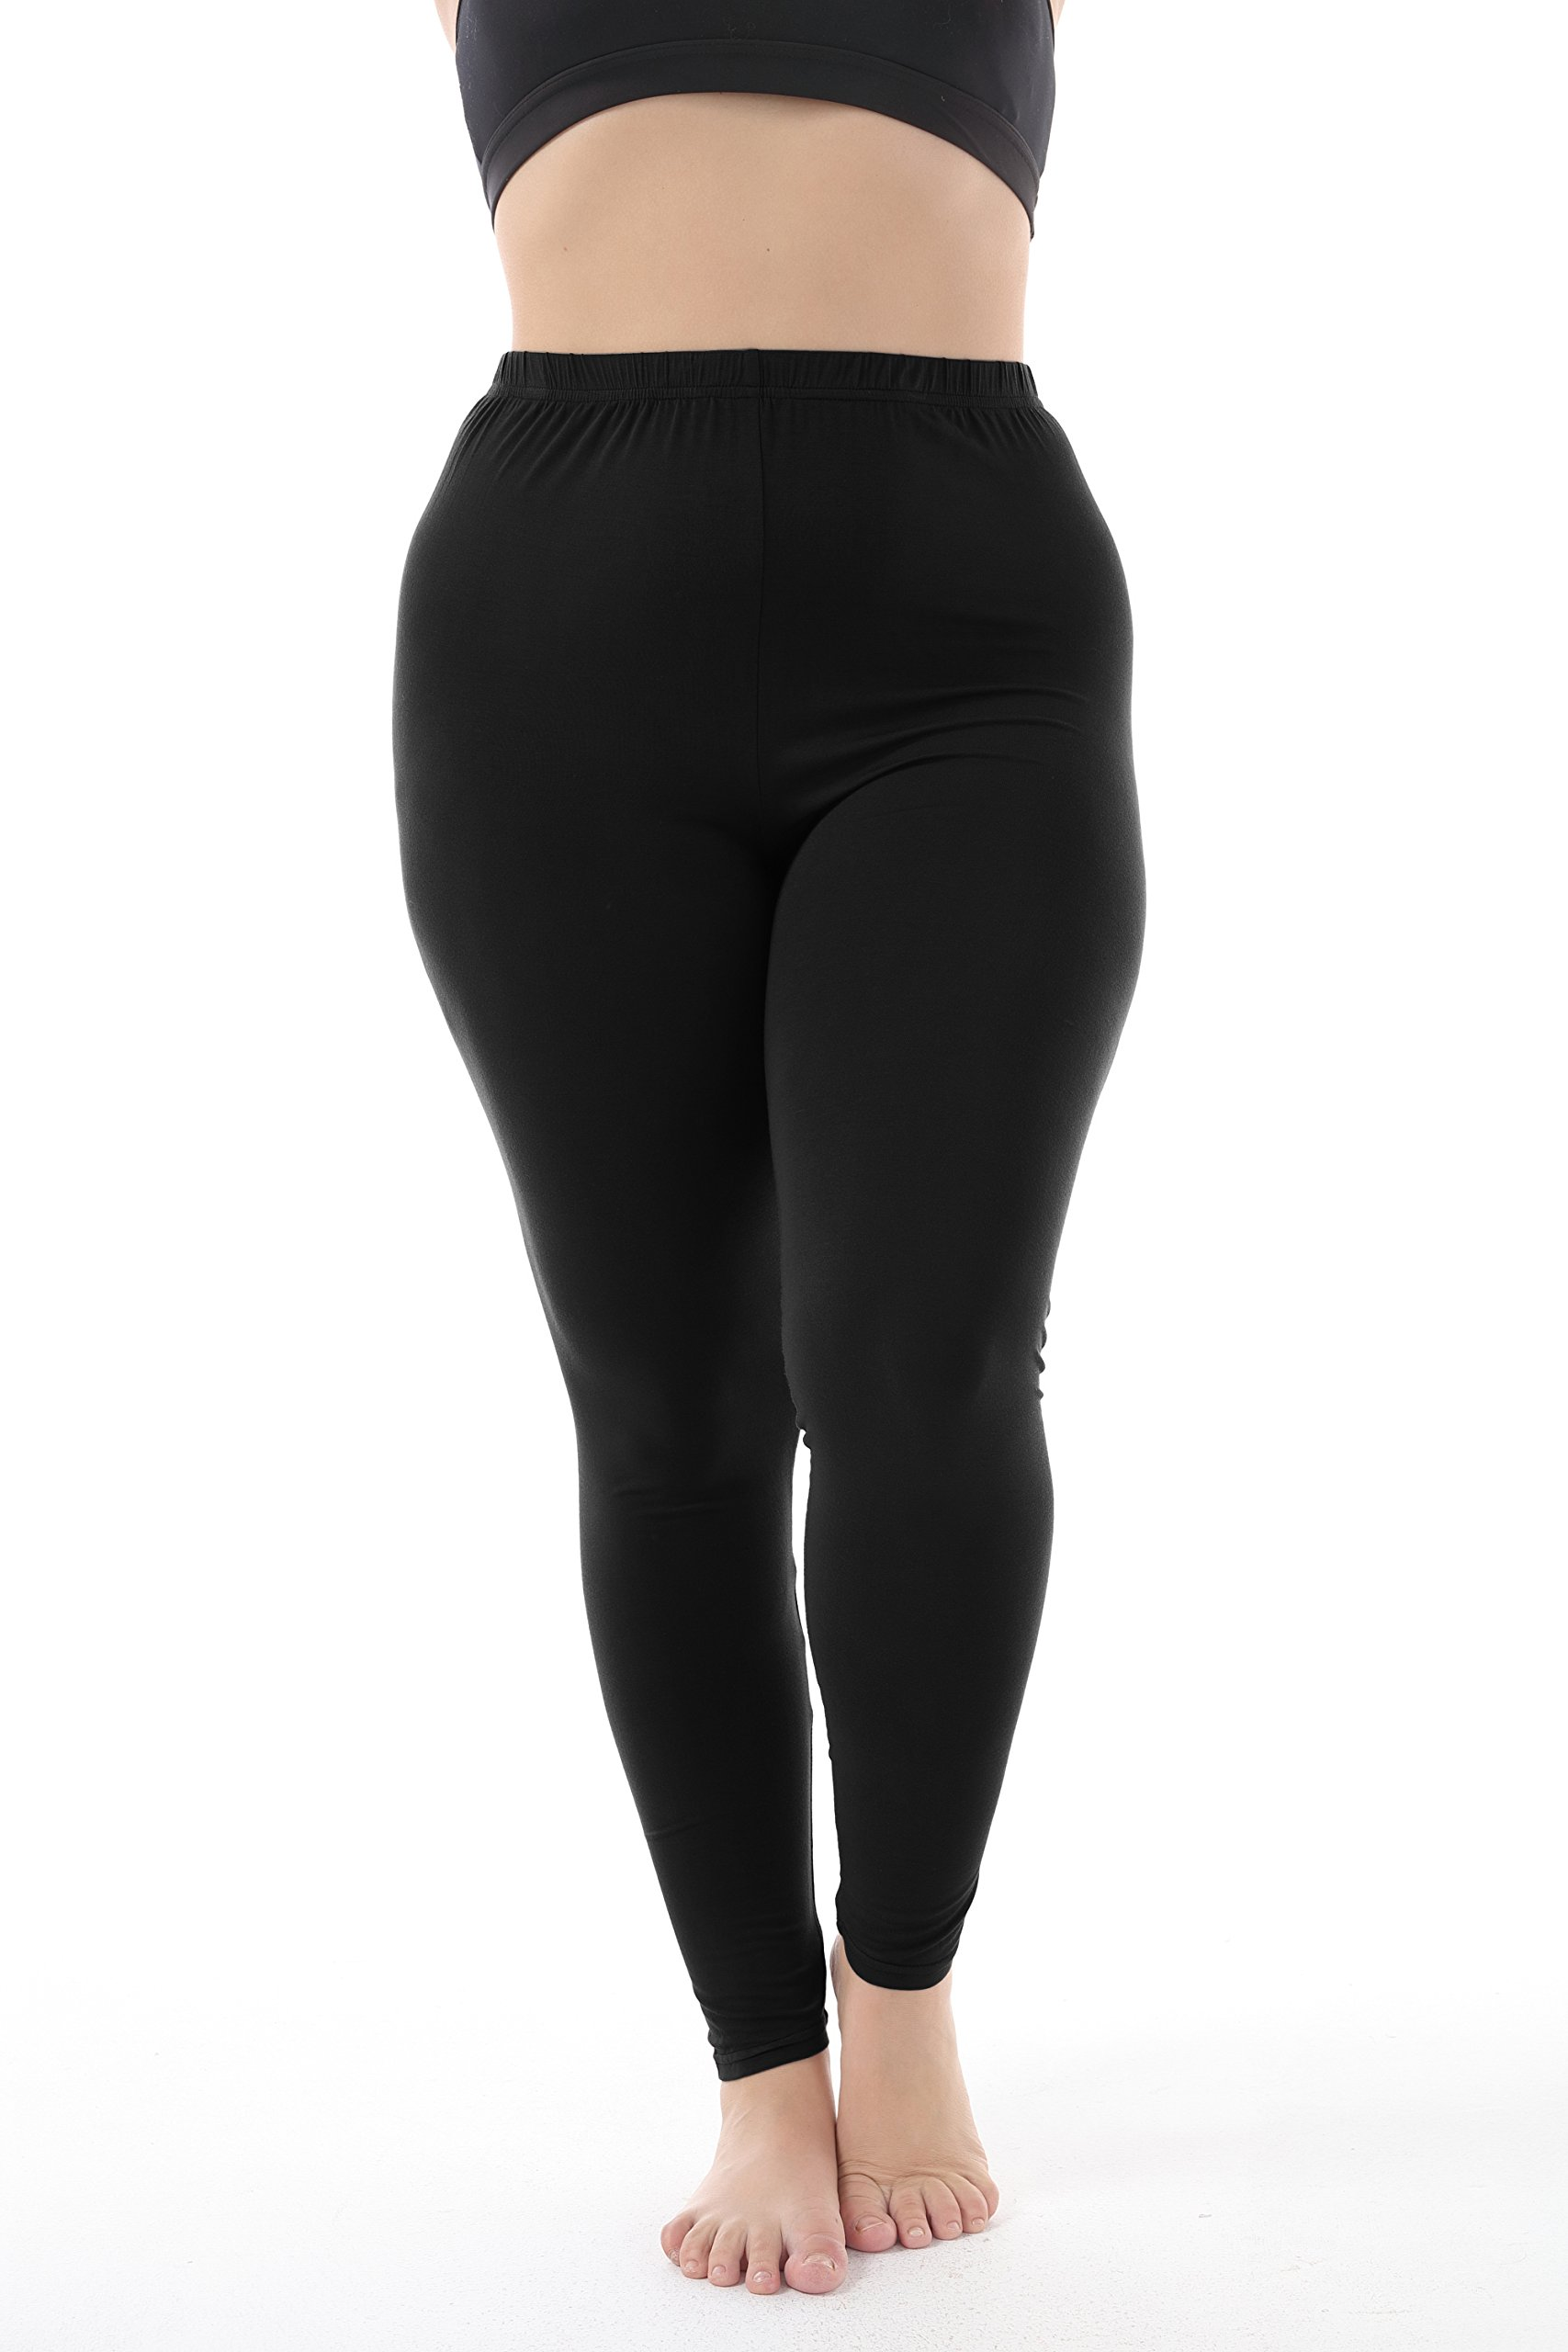 a7db76efb51 Zerdocean Women s Plus Size Modal Lightweight Full Length Leggings Black 3X  - PartialUpdate   Leggings   Clothing